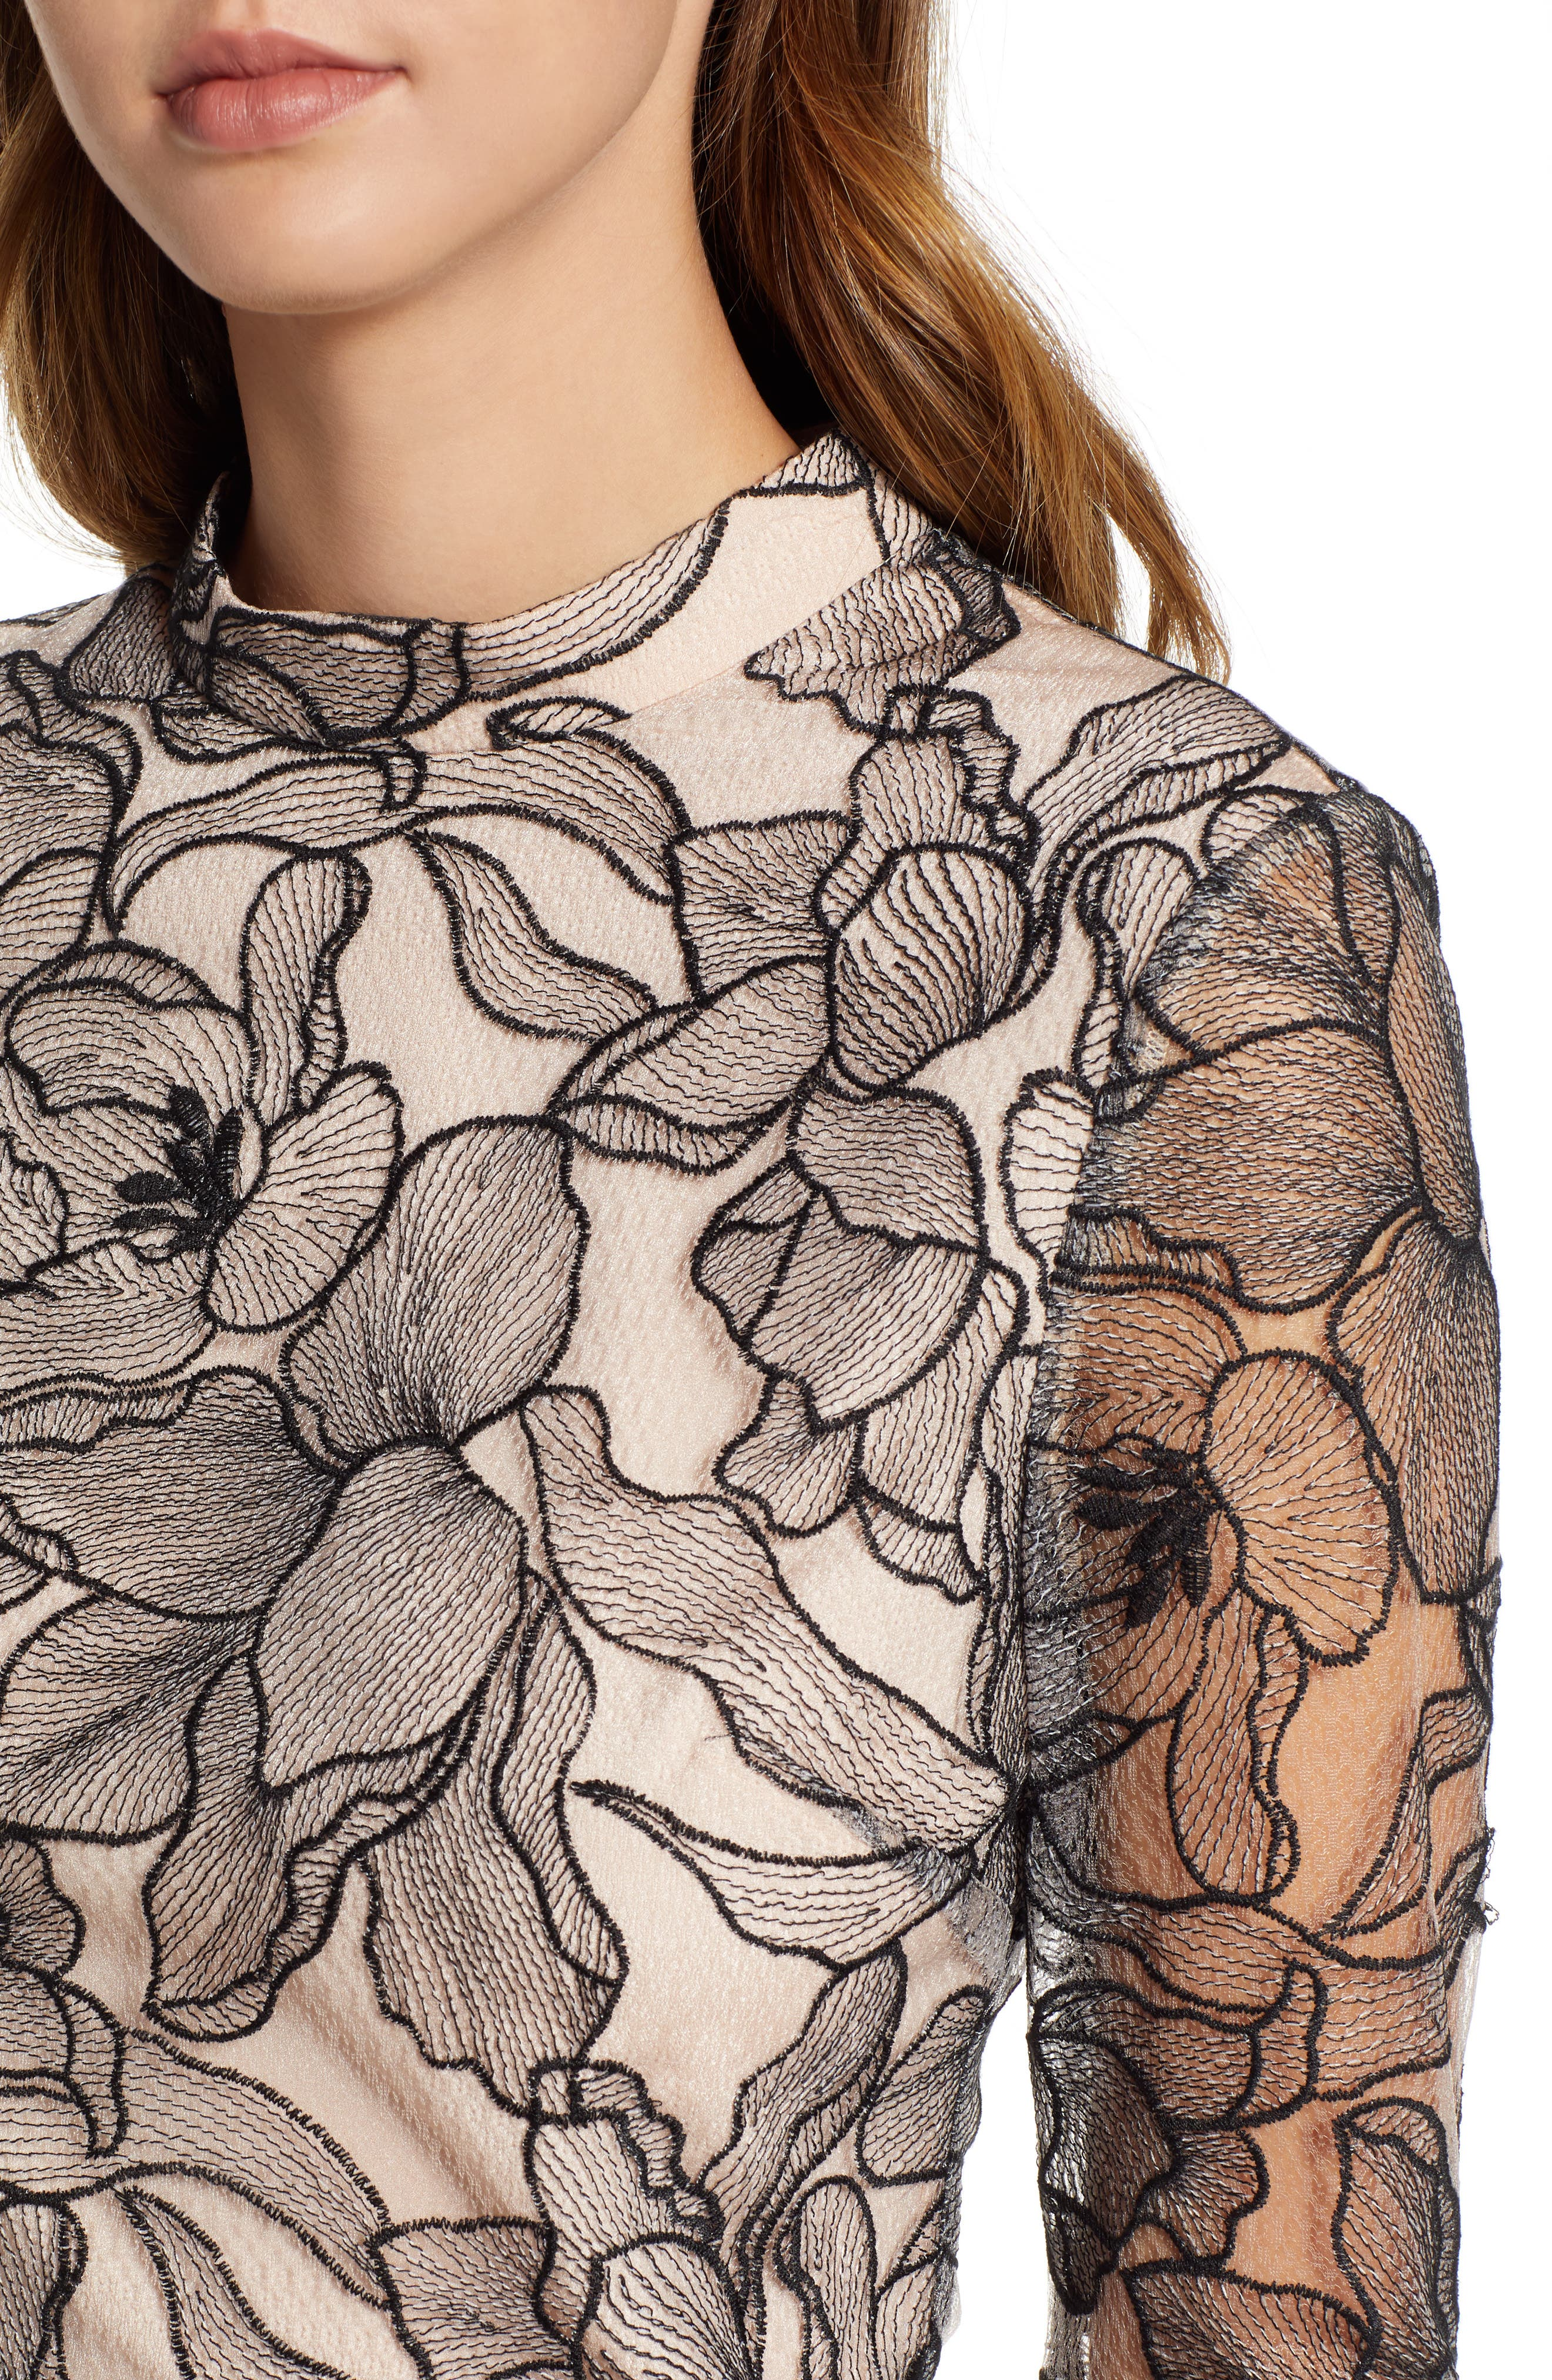 Mina Cropped Lace Top,                             Alternate thumbnail 4, color,                             BLACK NUDE LACE